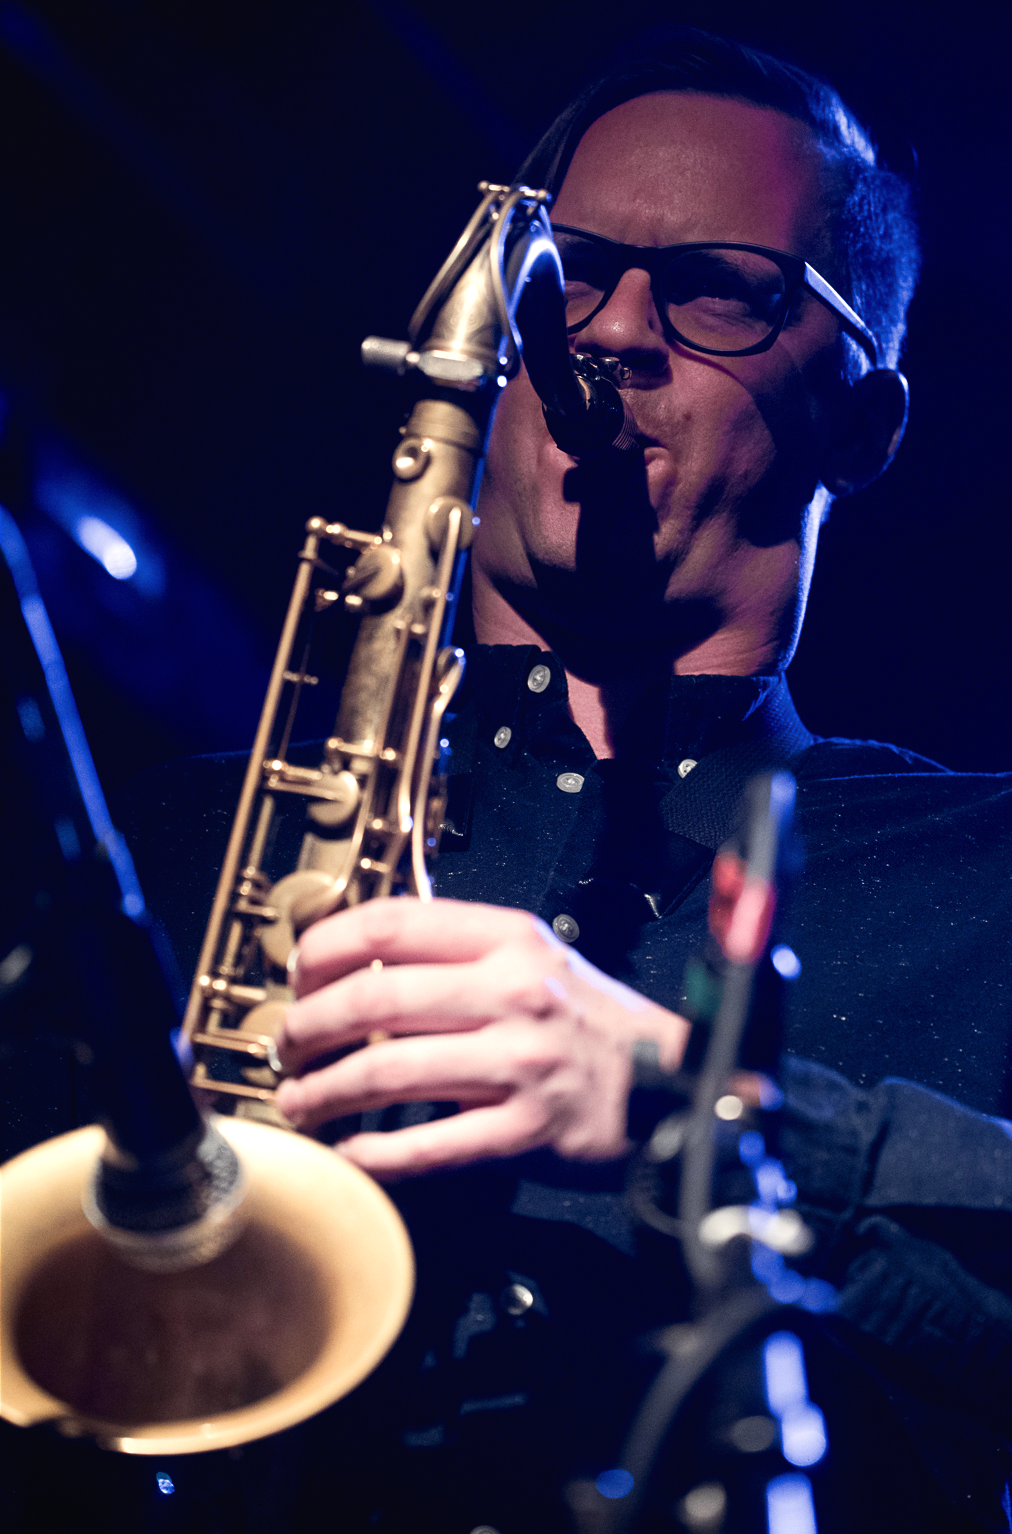 Past SaxFest 2019 - Chris Bullock - Saxophonist with SNARKY PUPPYChris Bullock will be embarking on his debut CD release tour and will be our NSU SaxFest Guest Artist with the Chris Bullock Band (Justin Stanton (keyboard/trumpeter from Snarky Puppy) on keys/synth, Frank LoCrasto on keys/synth, and Jharis Yokley on drums).The SaxFest starts at 1pm on February 2 in Magale Recital Hall on the campus of NSU and will include:• 1pm - Jazz Combo Masterclass by guest artists• 2:15pm - Q&A with Chris Bullock• 3pm - Saxophone Choir reading session• 4pm - Pizza Social• 6pm MAIN EVENT - Chris Bullock Band in ConcertMore details to follow. The event is FREE and open to the public.